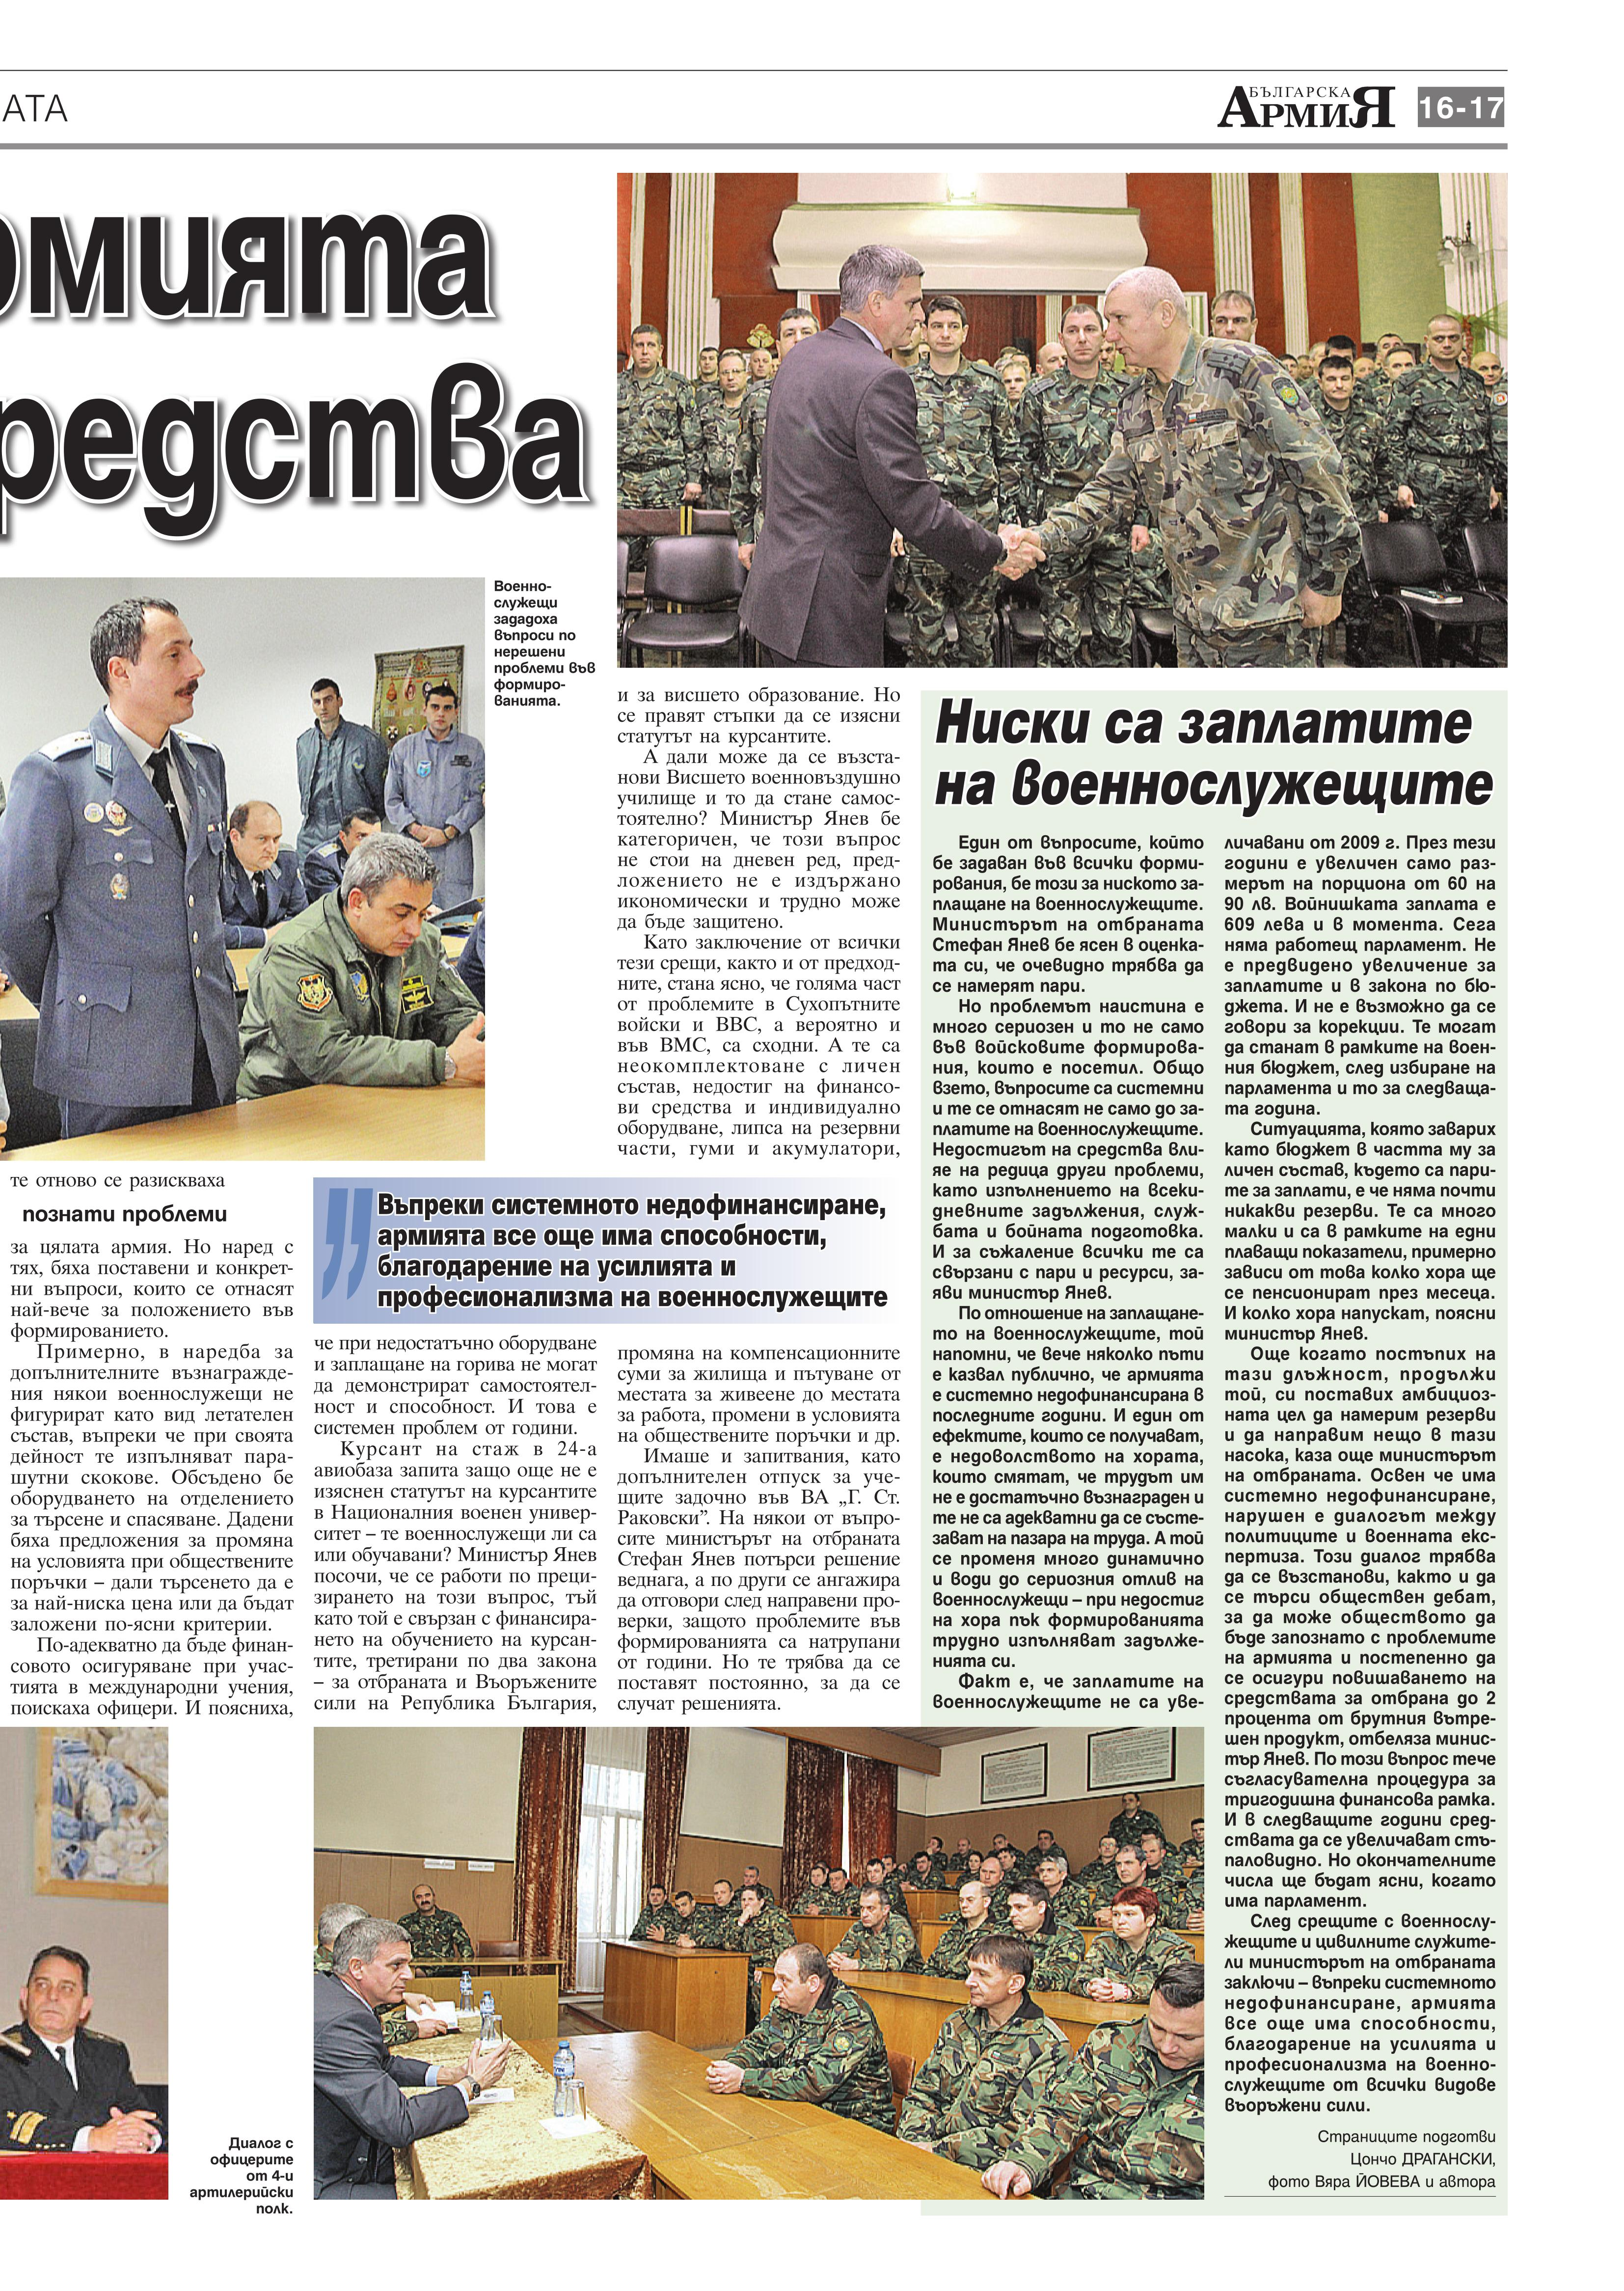 https://www.armymedia.bg/wp-content/uploads/2015/06/17.page1_-17.jpg